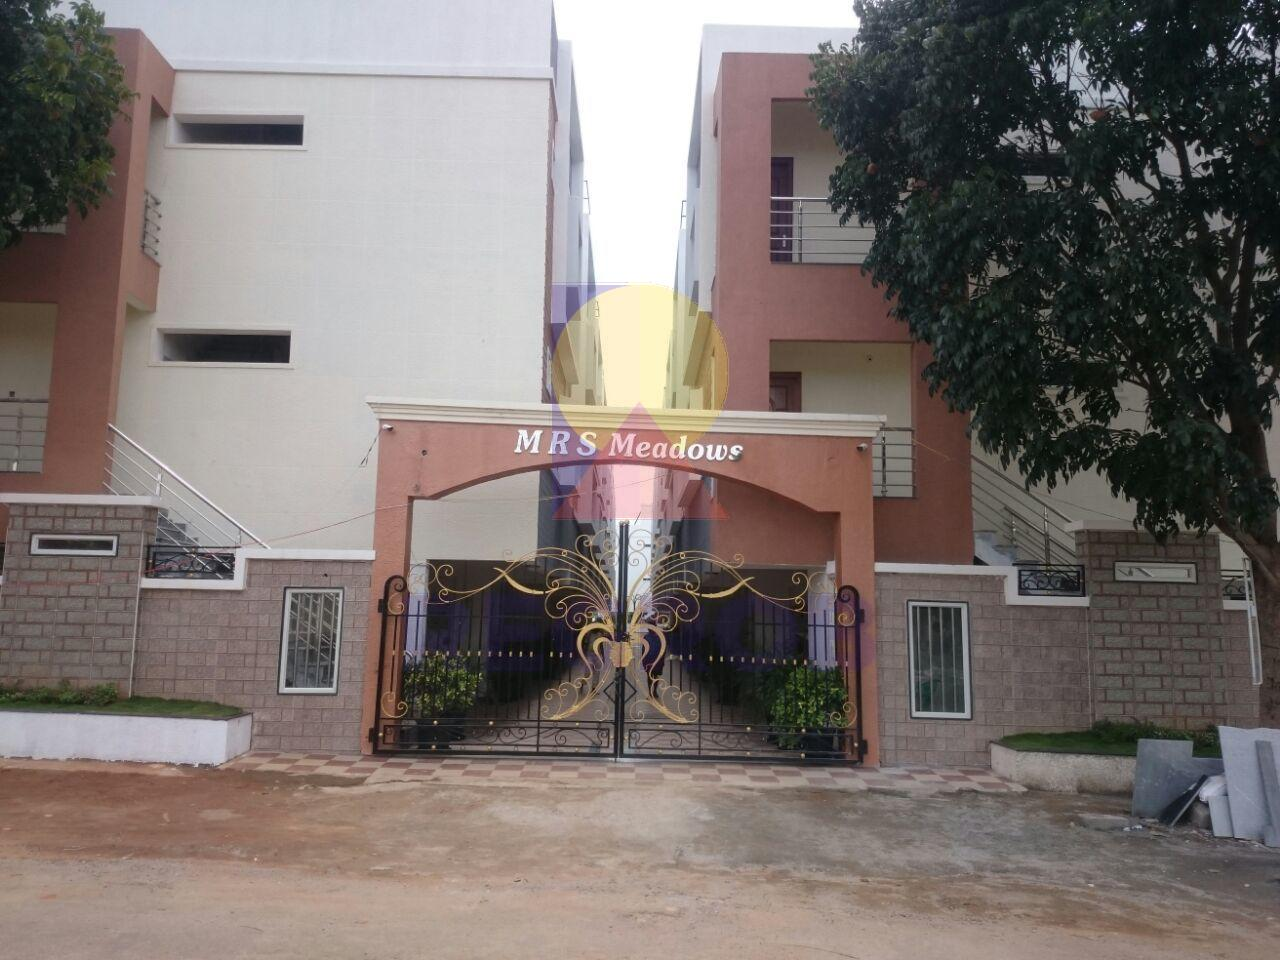 4 bhk villa in mrs meadows villas regrob for 4 bhk villas in bangalore